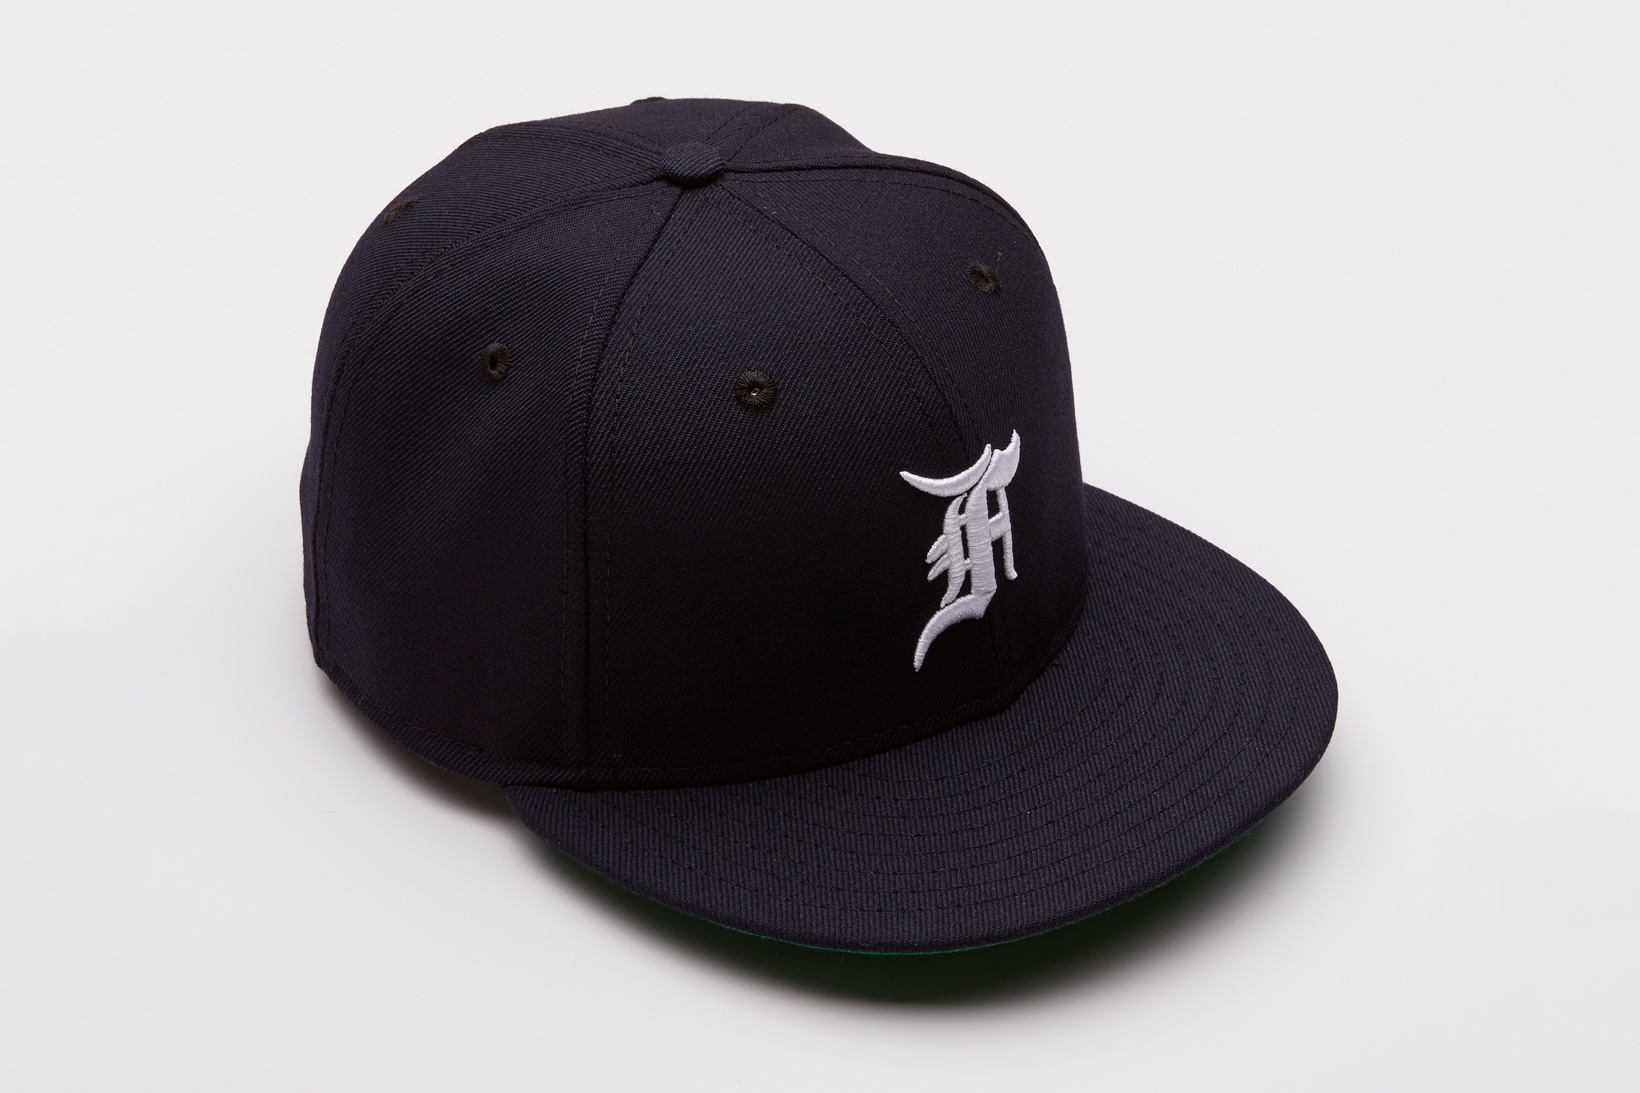 0ee0d25a325 The Fear of God x New Era fitted caps are set to retail for  295 USD  beginning in June.